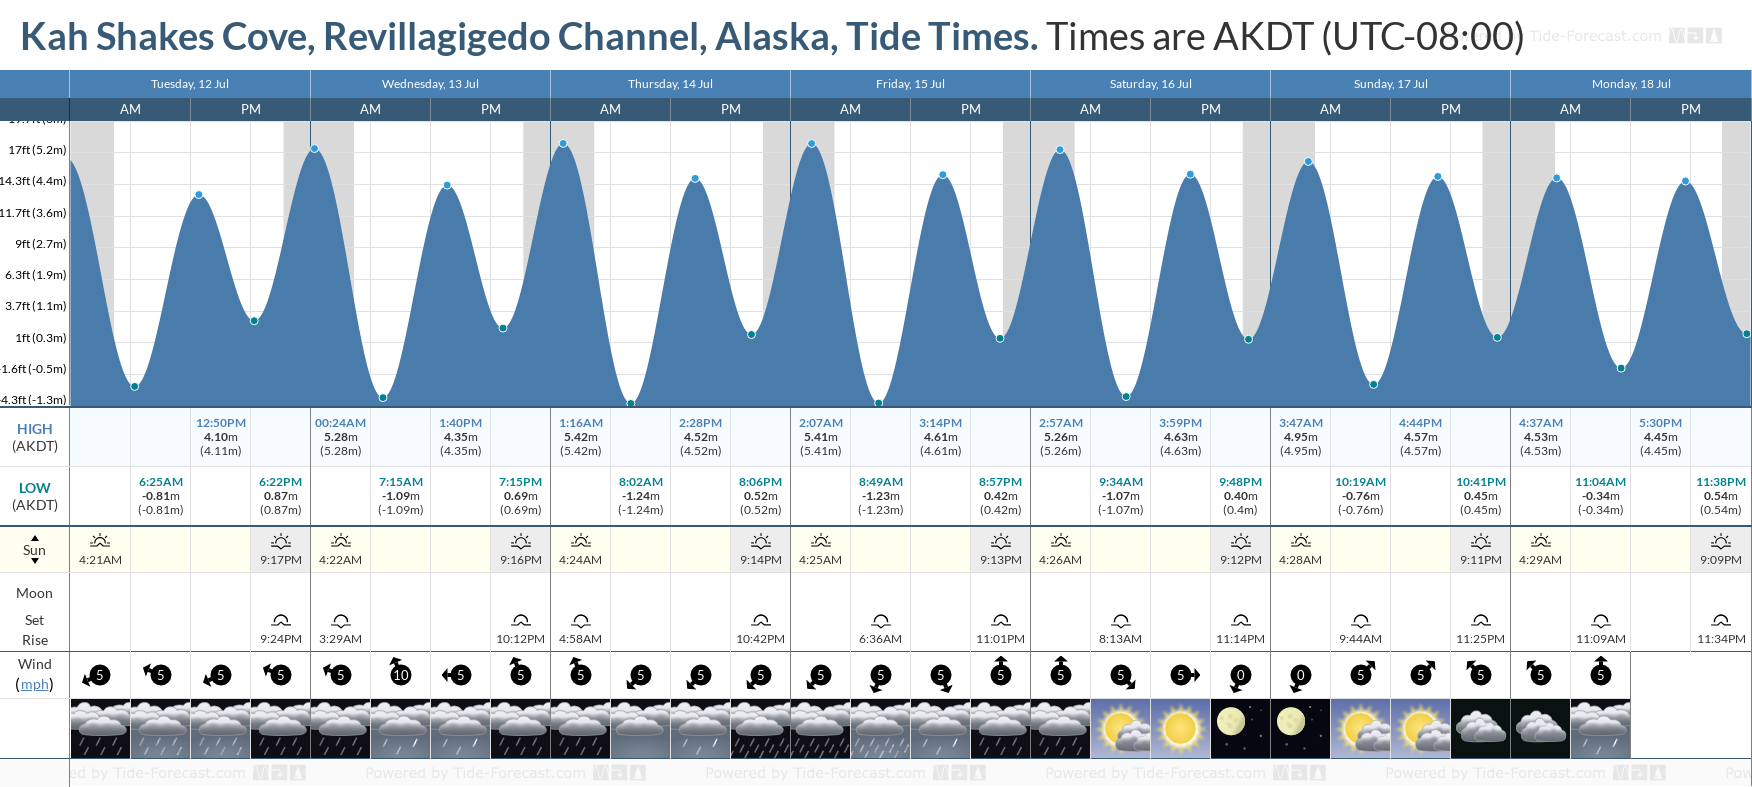 Kah Shakes Cove, Revillagigedo Channel, Alaska Tide Chart including high and low tide tide times for the next 7 days